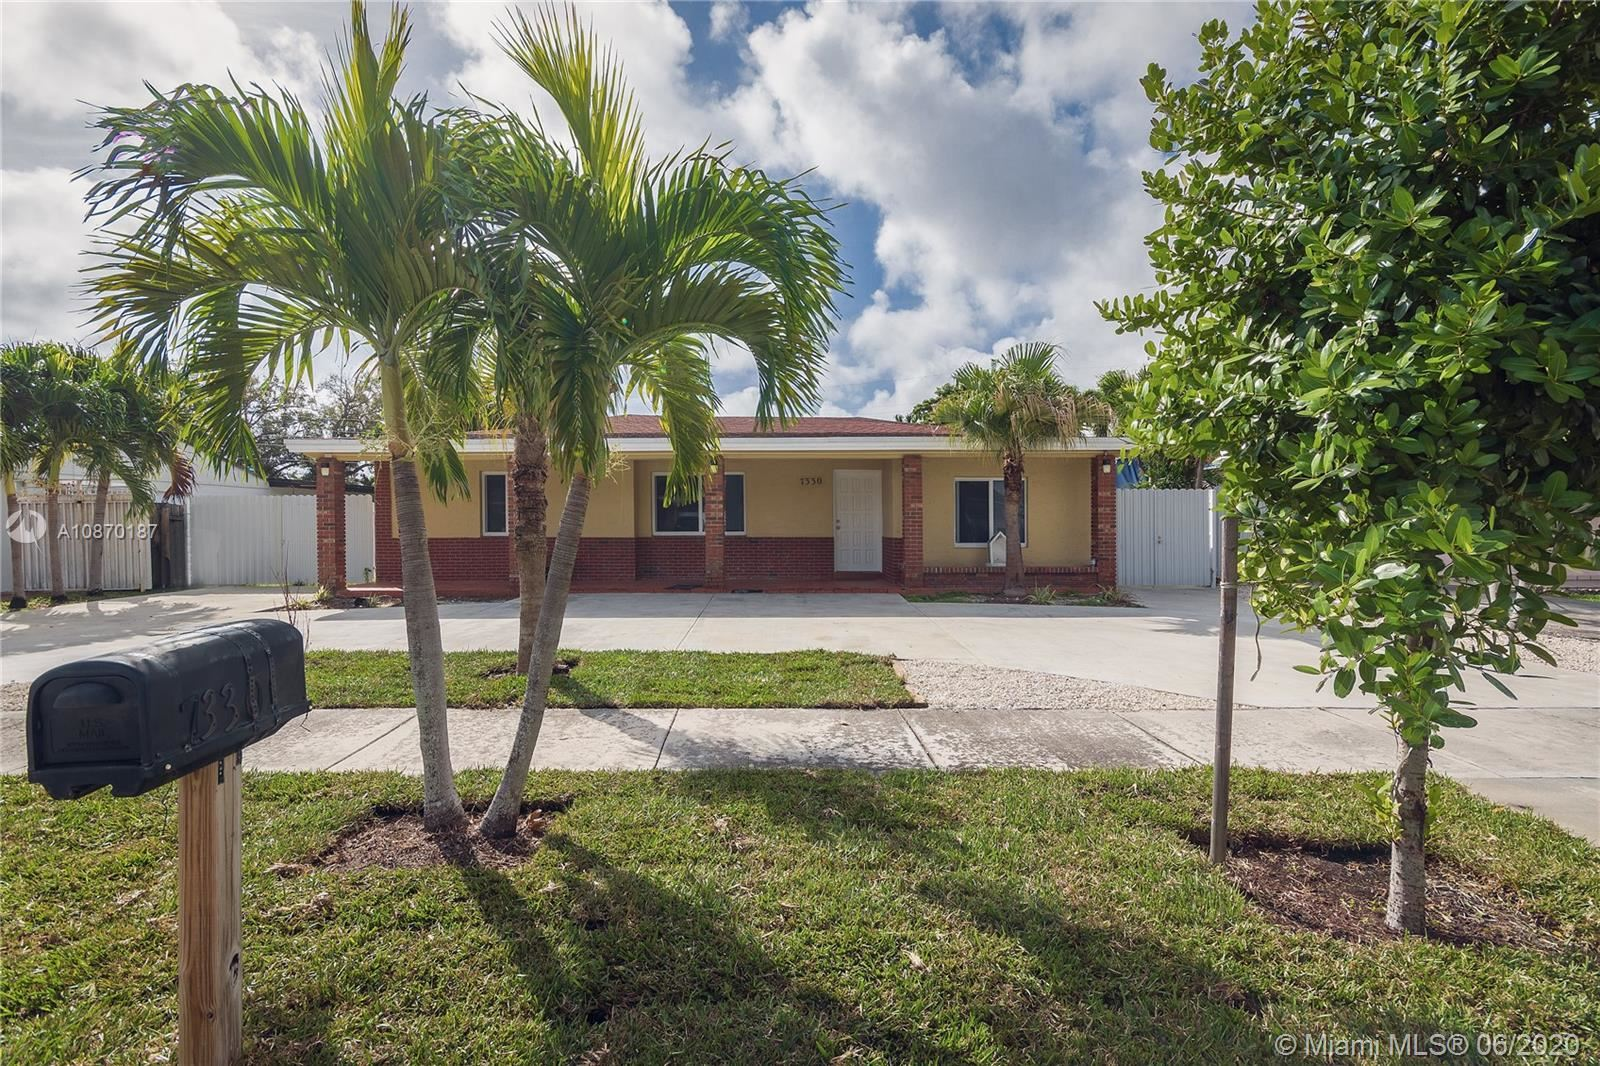 7330 SW 13th Ter, Miami, FL 33144 - #: A10870187